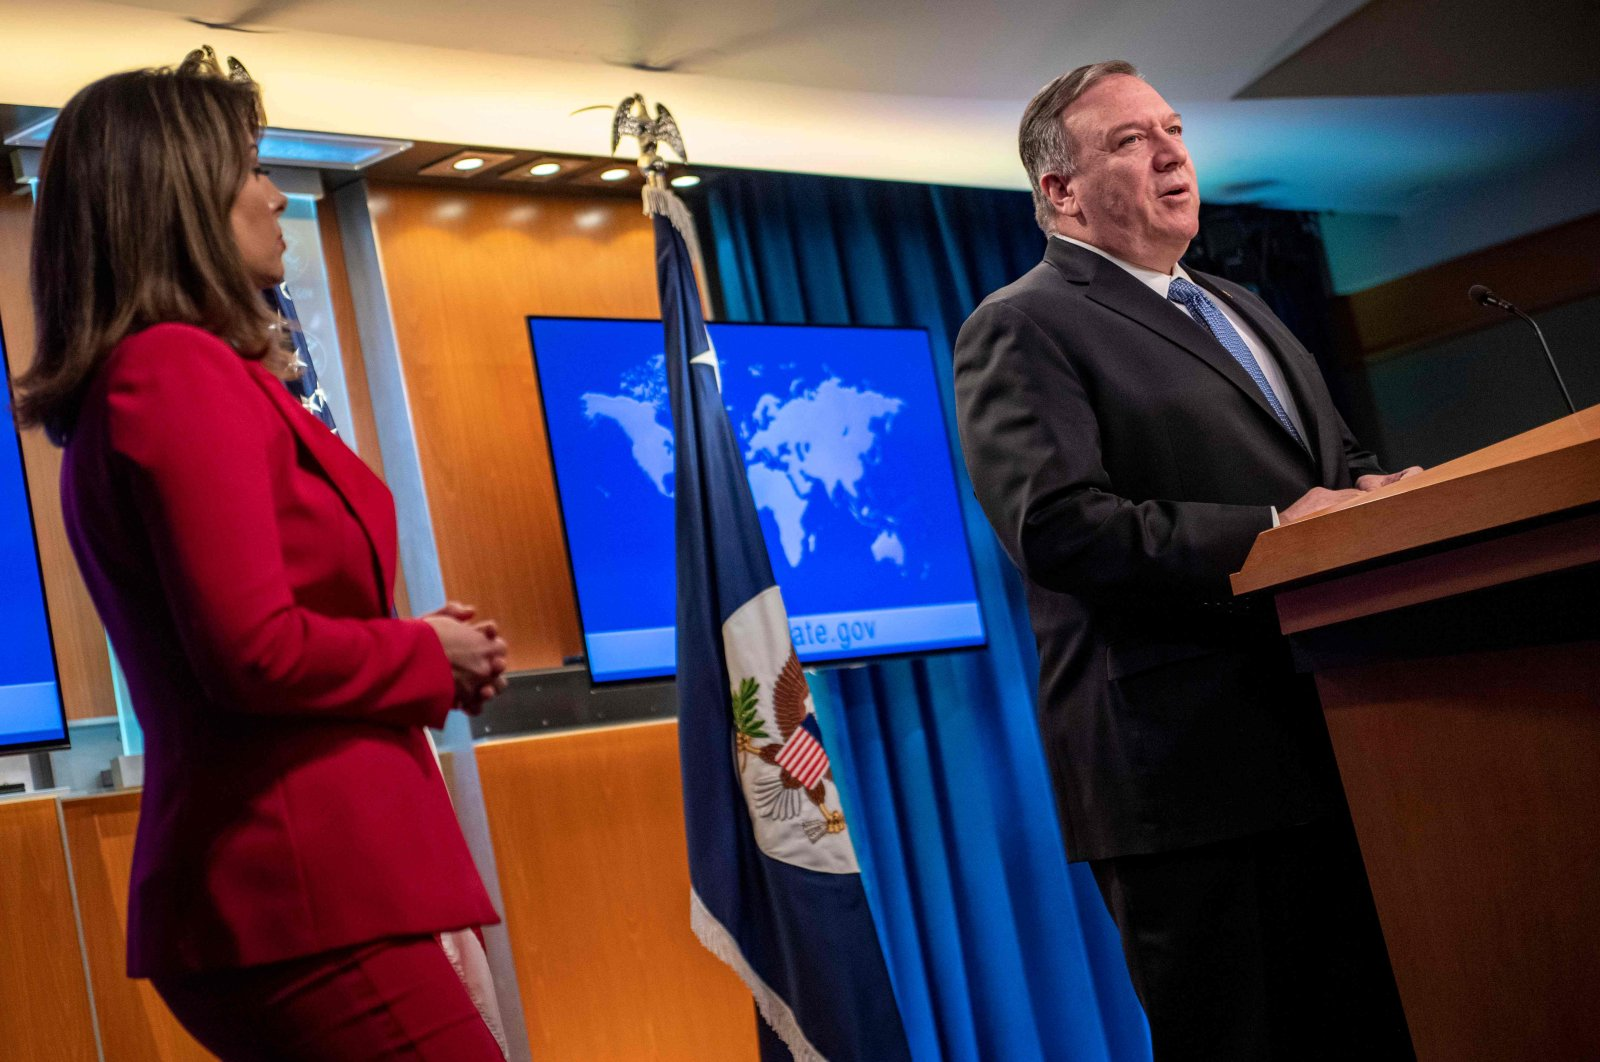 U.S. Secretary of State Mike Pompeo delivers remarks to the media, in the Press Briefing Room, at the Department of State in March 5, 2020 in Washington D.C. (AFP Photo)